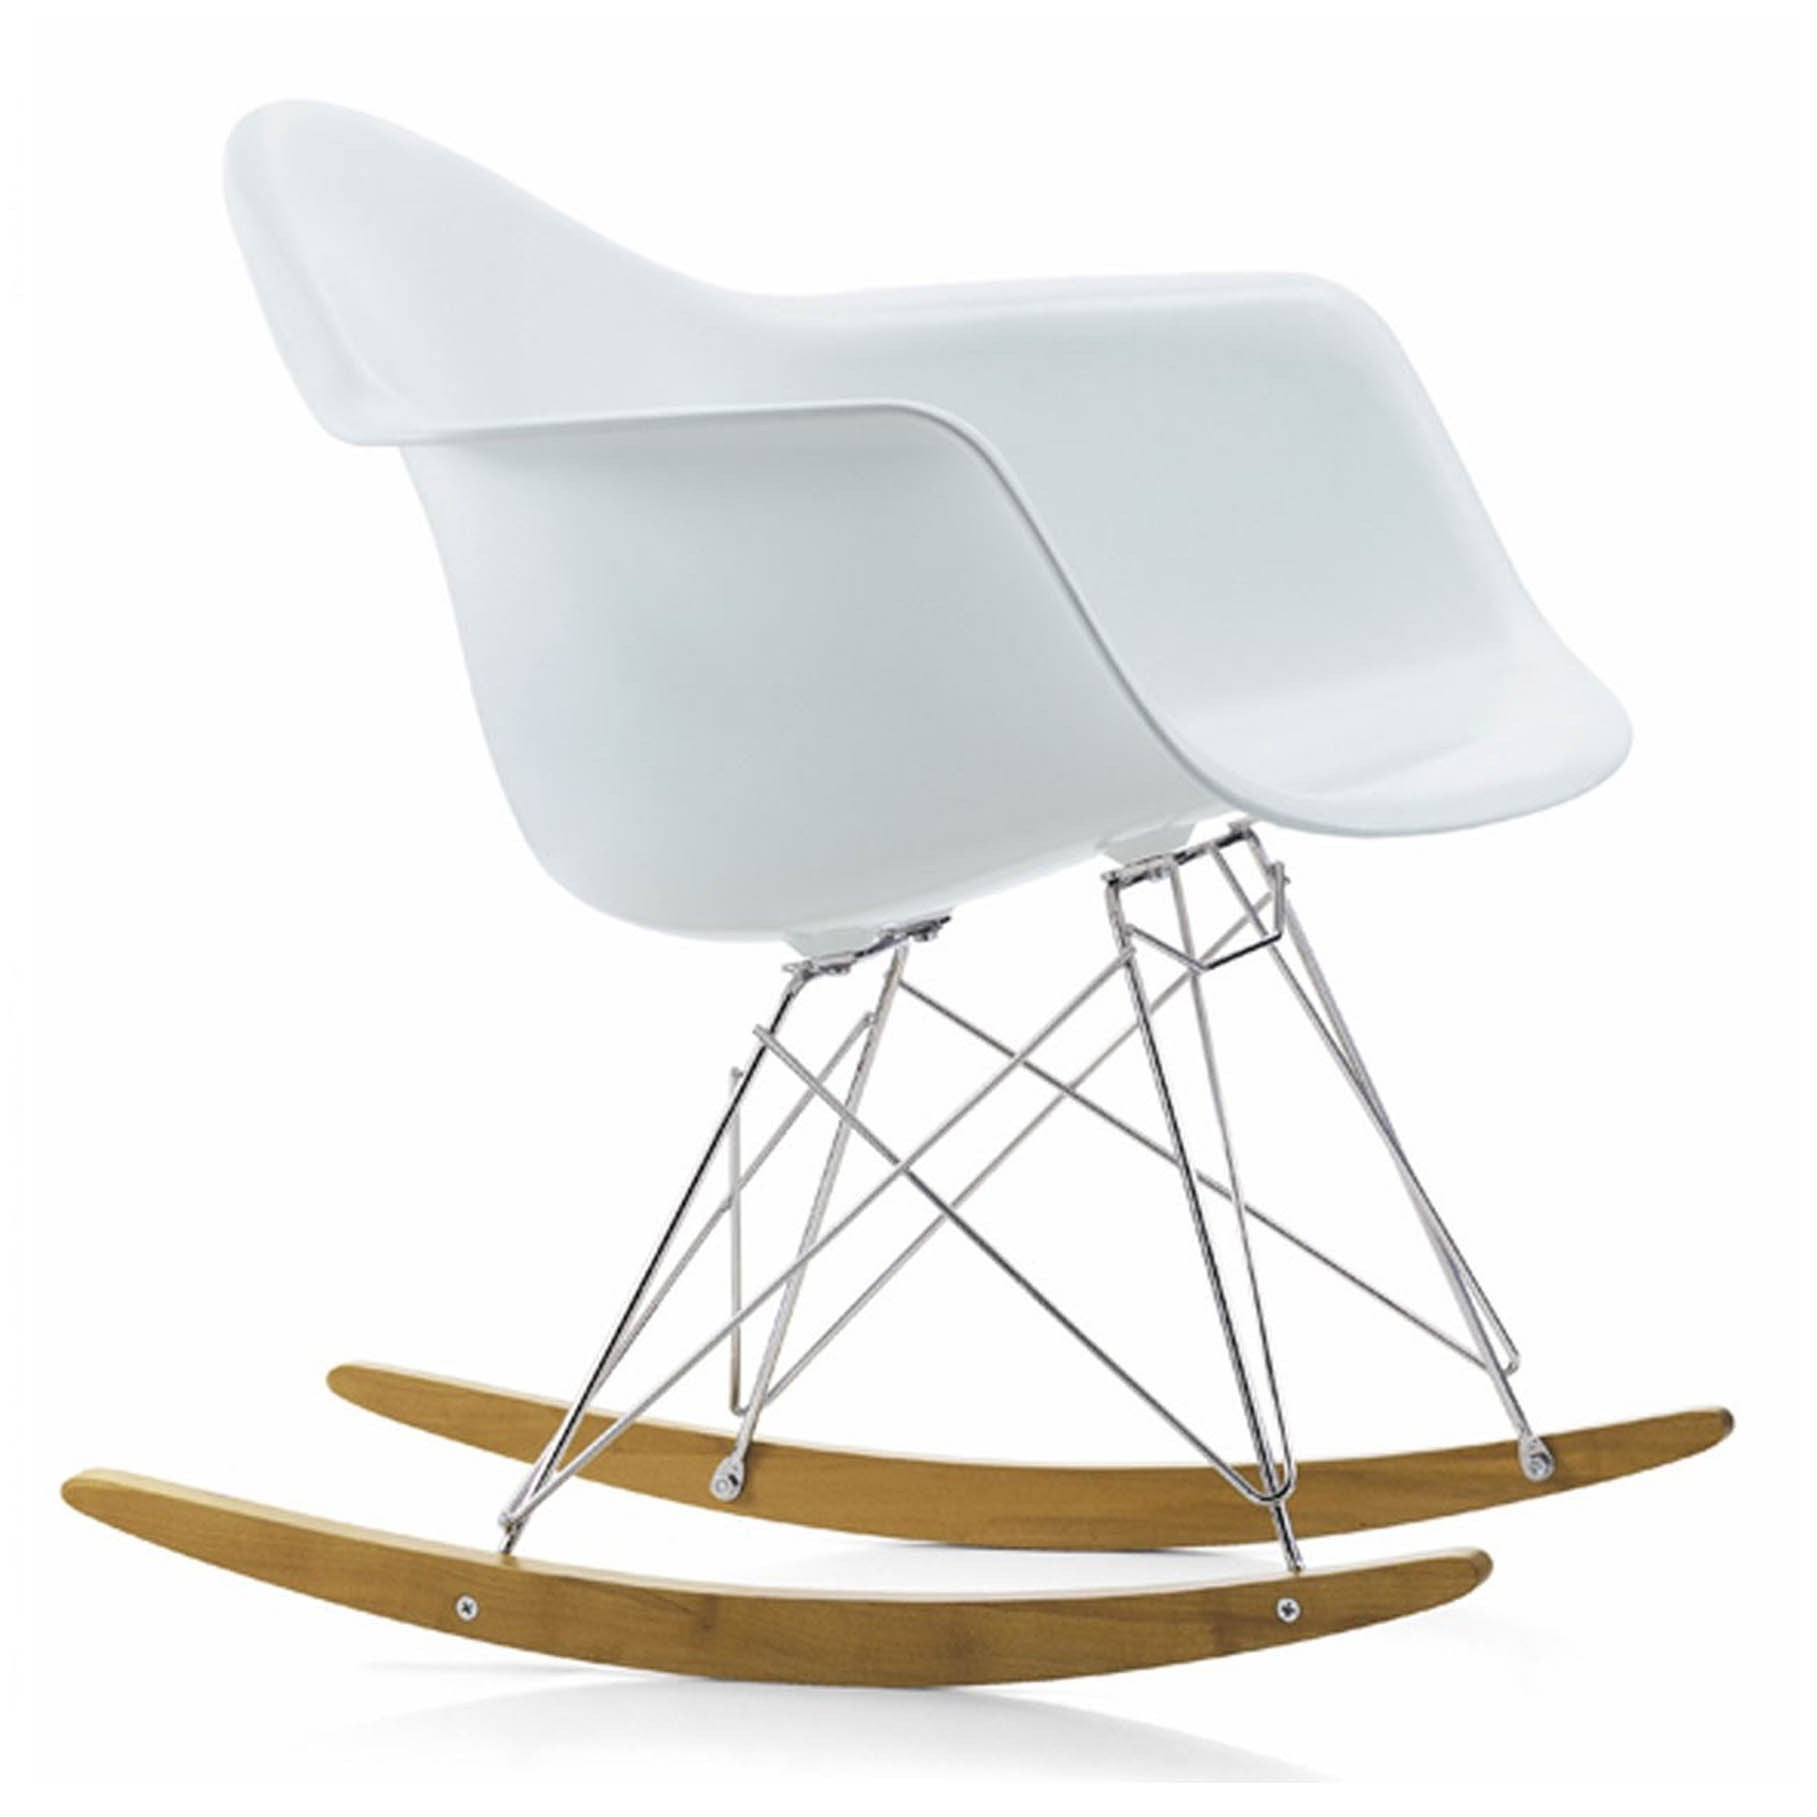 Rocking Chair-White Plastic- MSR0150P - ebarza